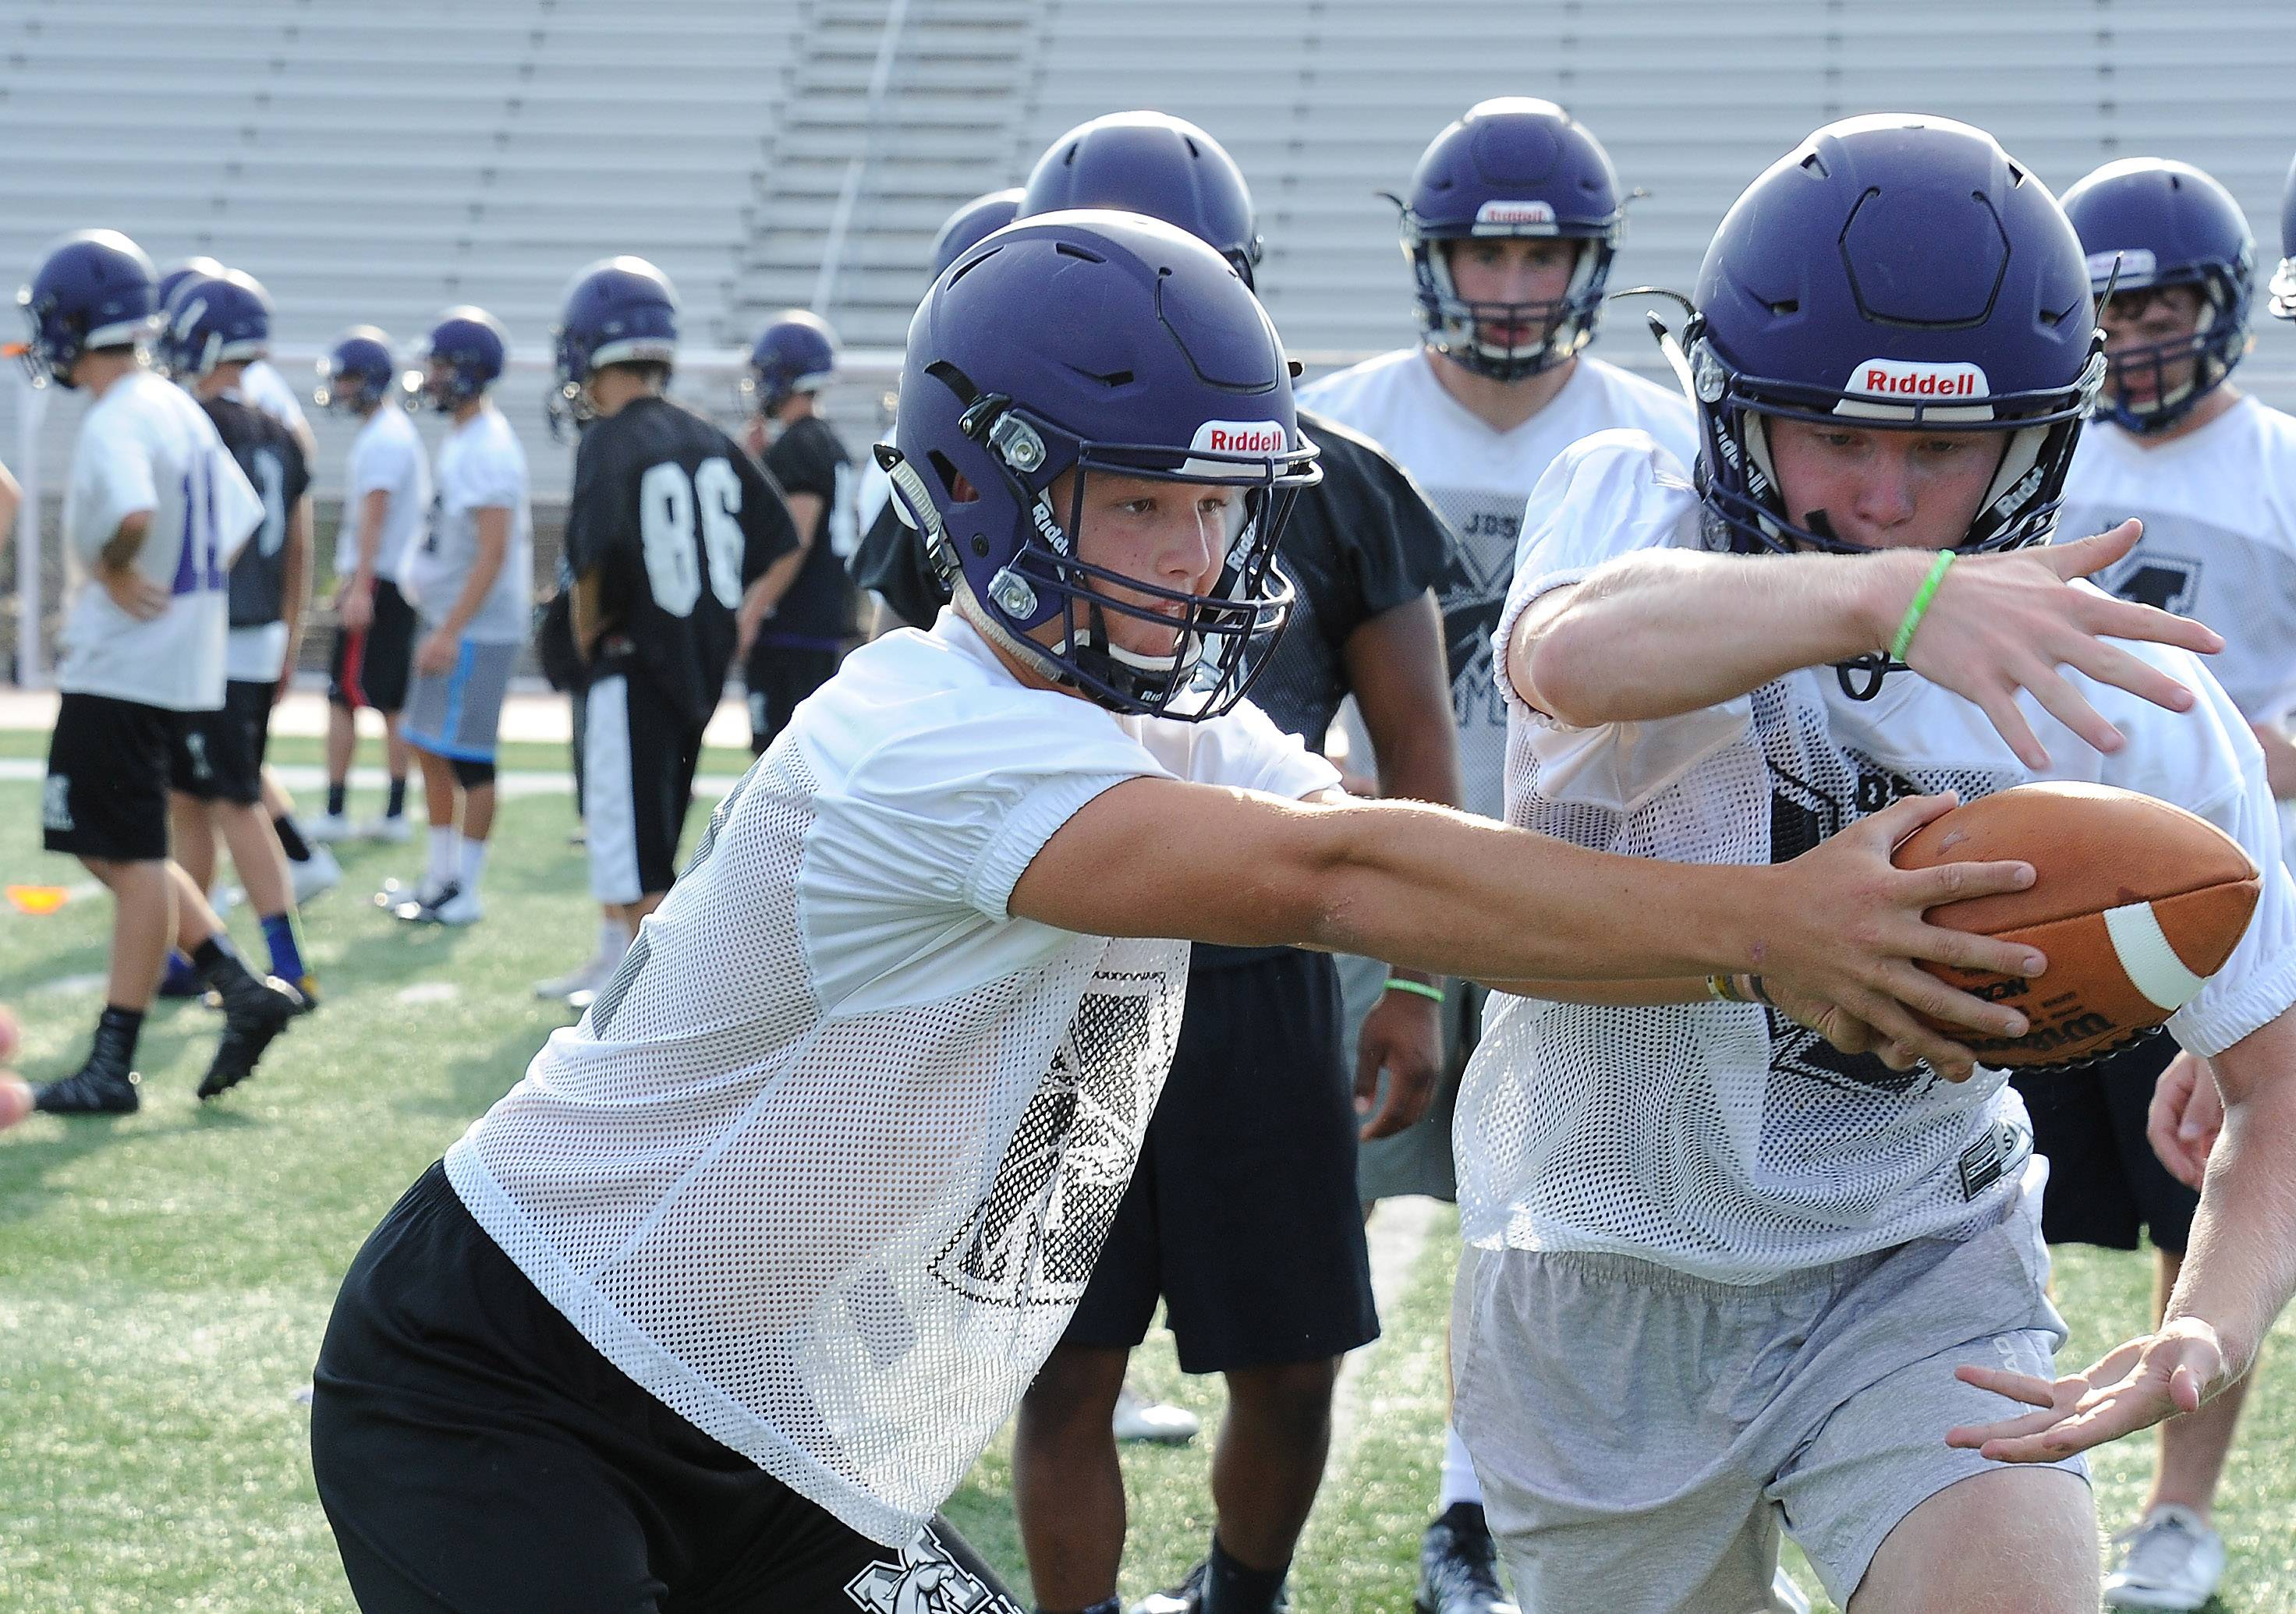 Rolling Meadows quarterback Asher O'Hara hands off to a teammate during the first practice of the season Monday.